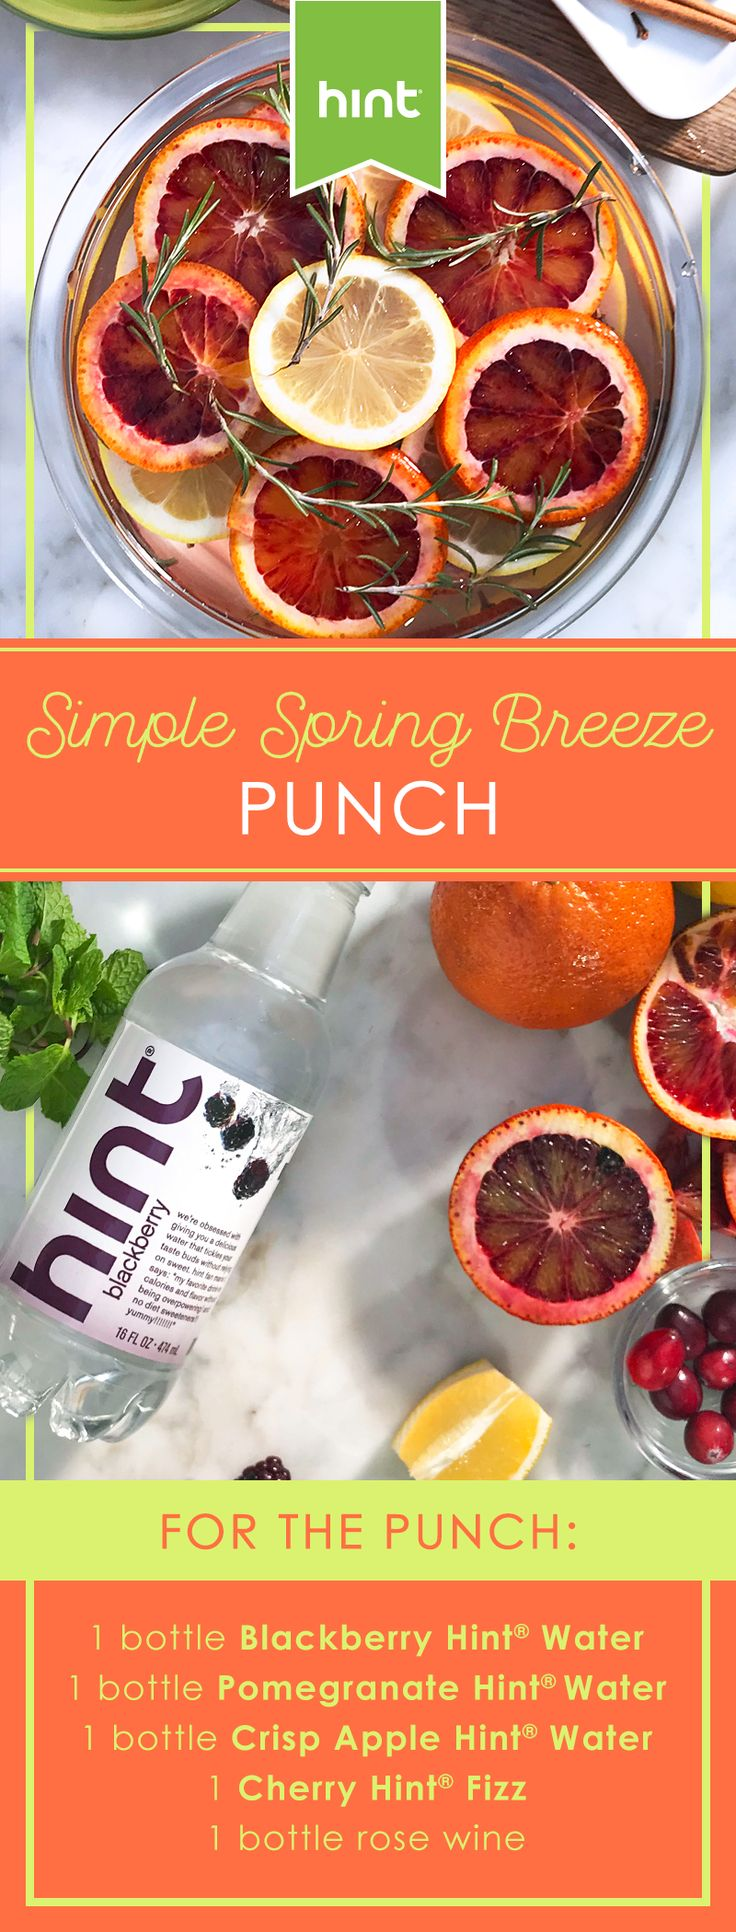 Hint® Simple Spring Breeze Punch!